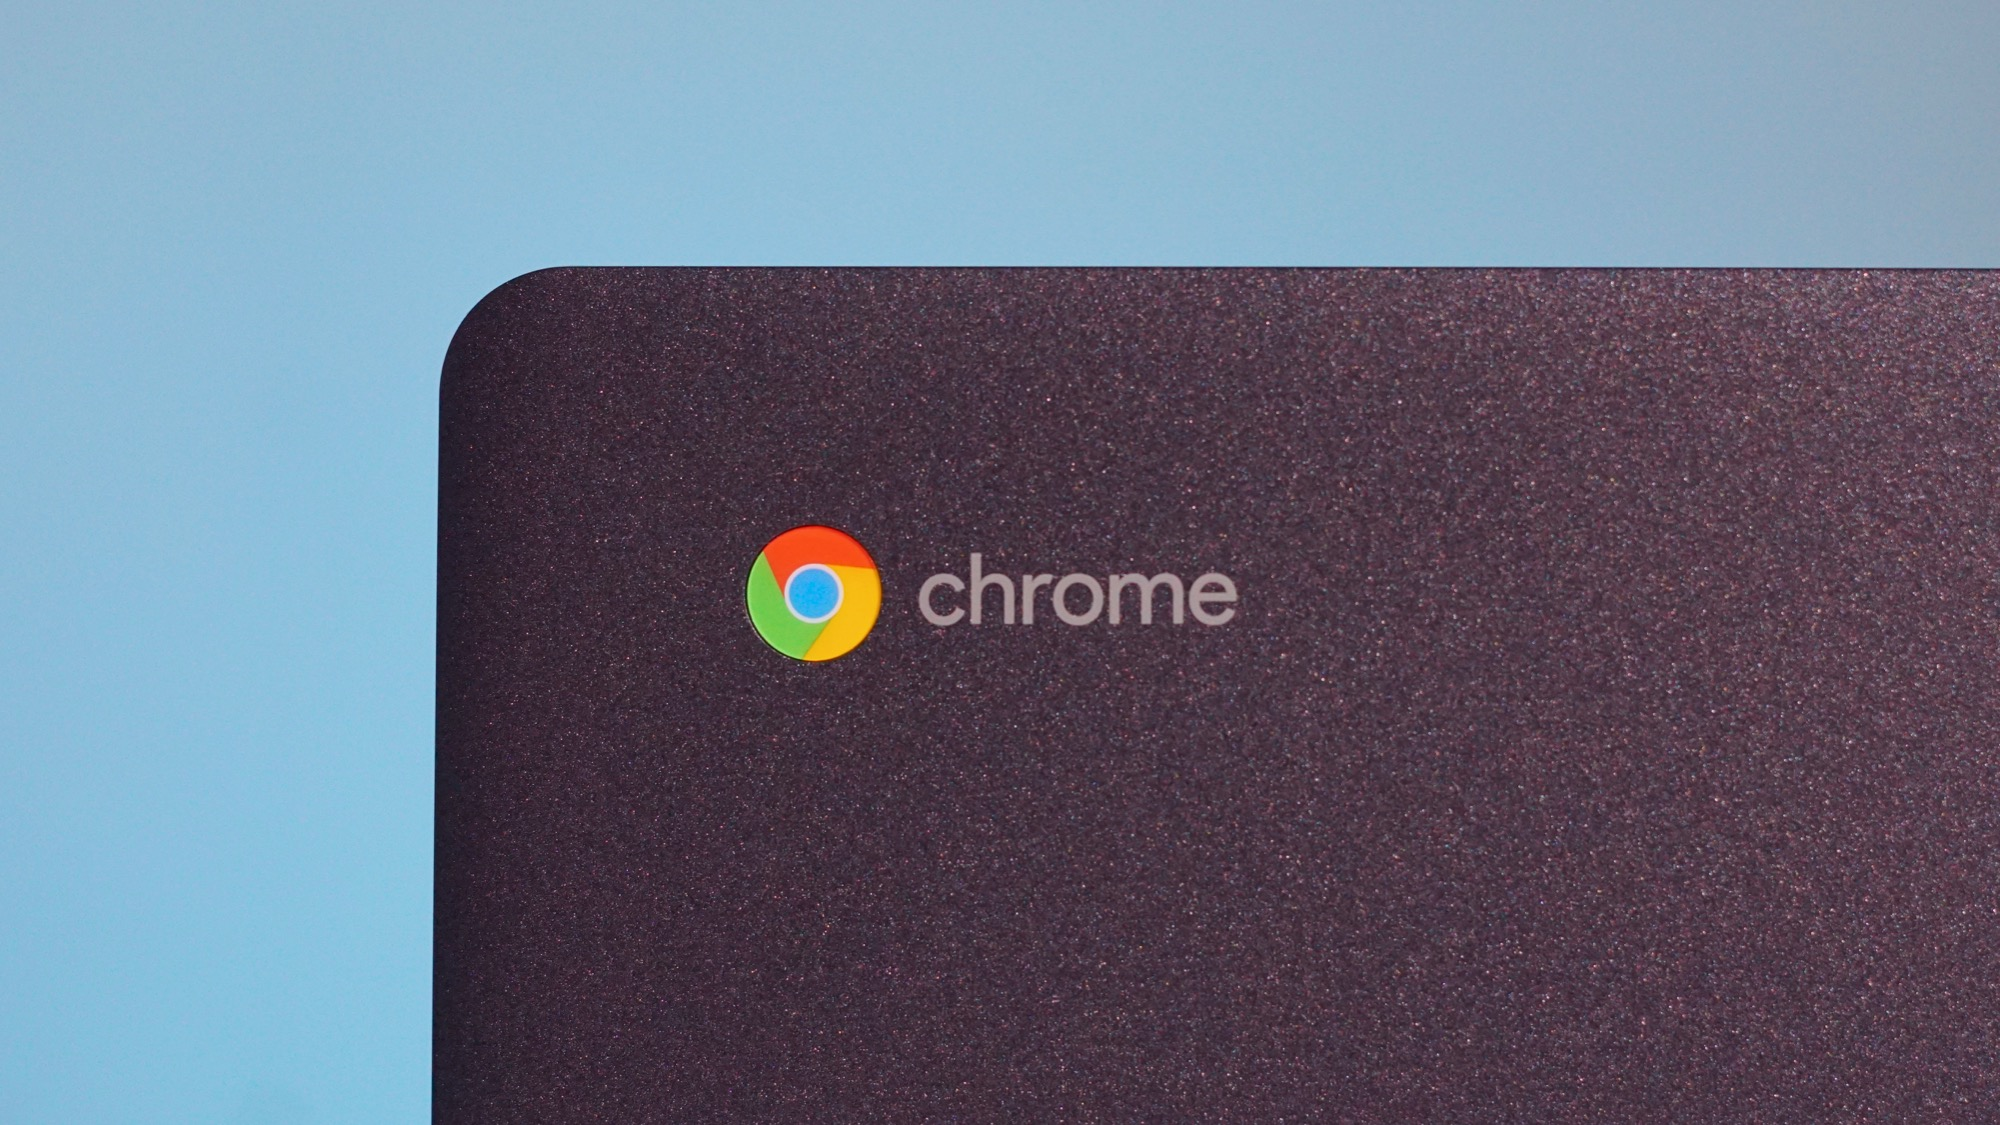 Just like that, here are more upcoming Chromebooks to keep an eye on